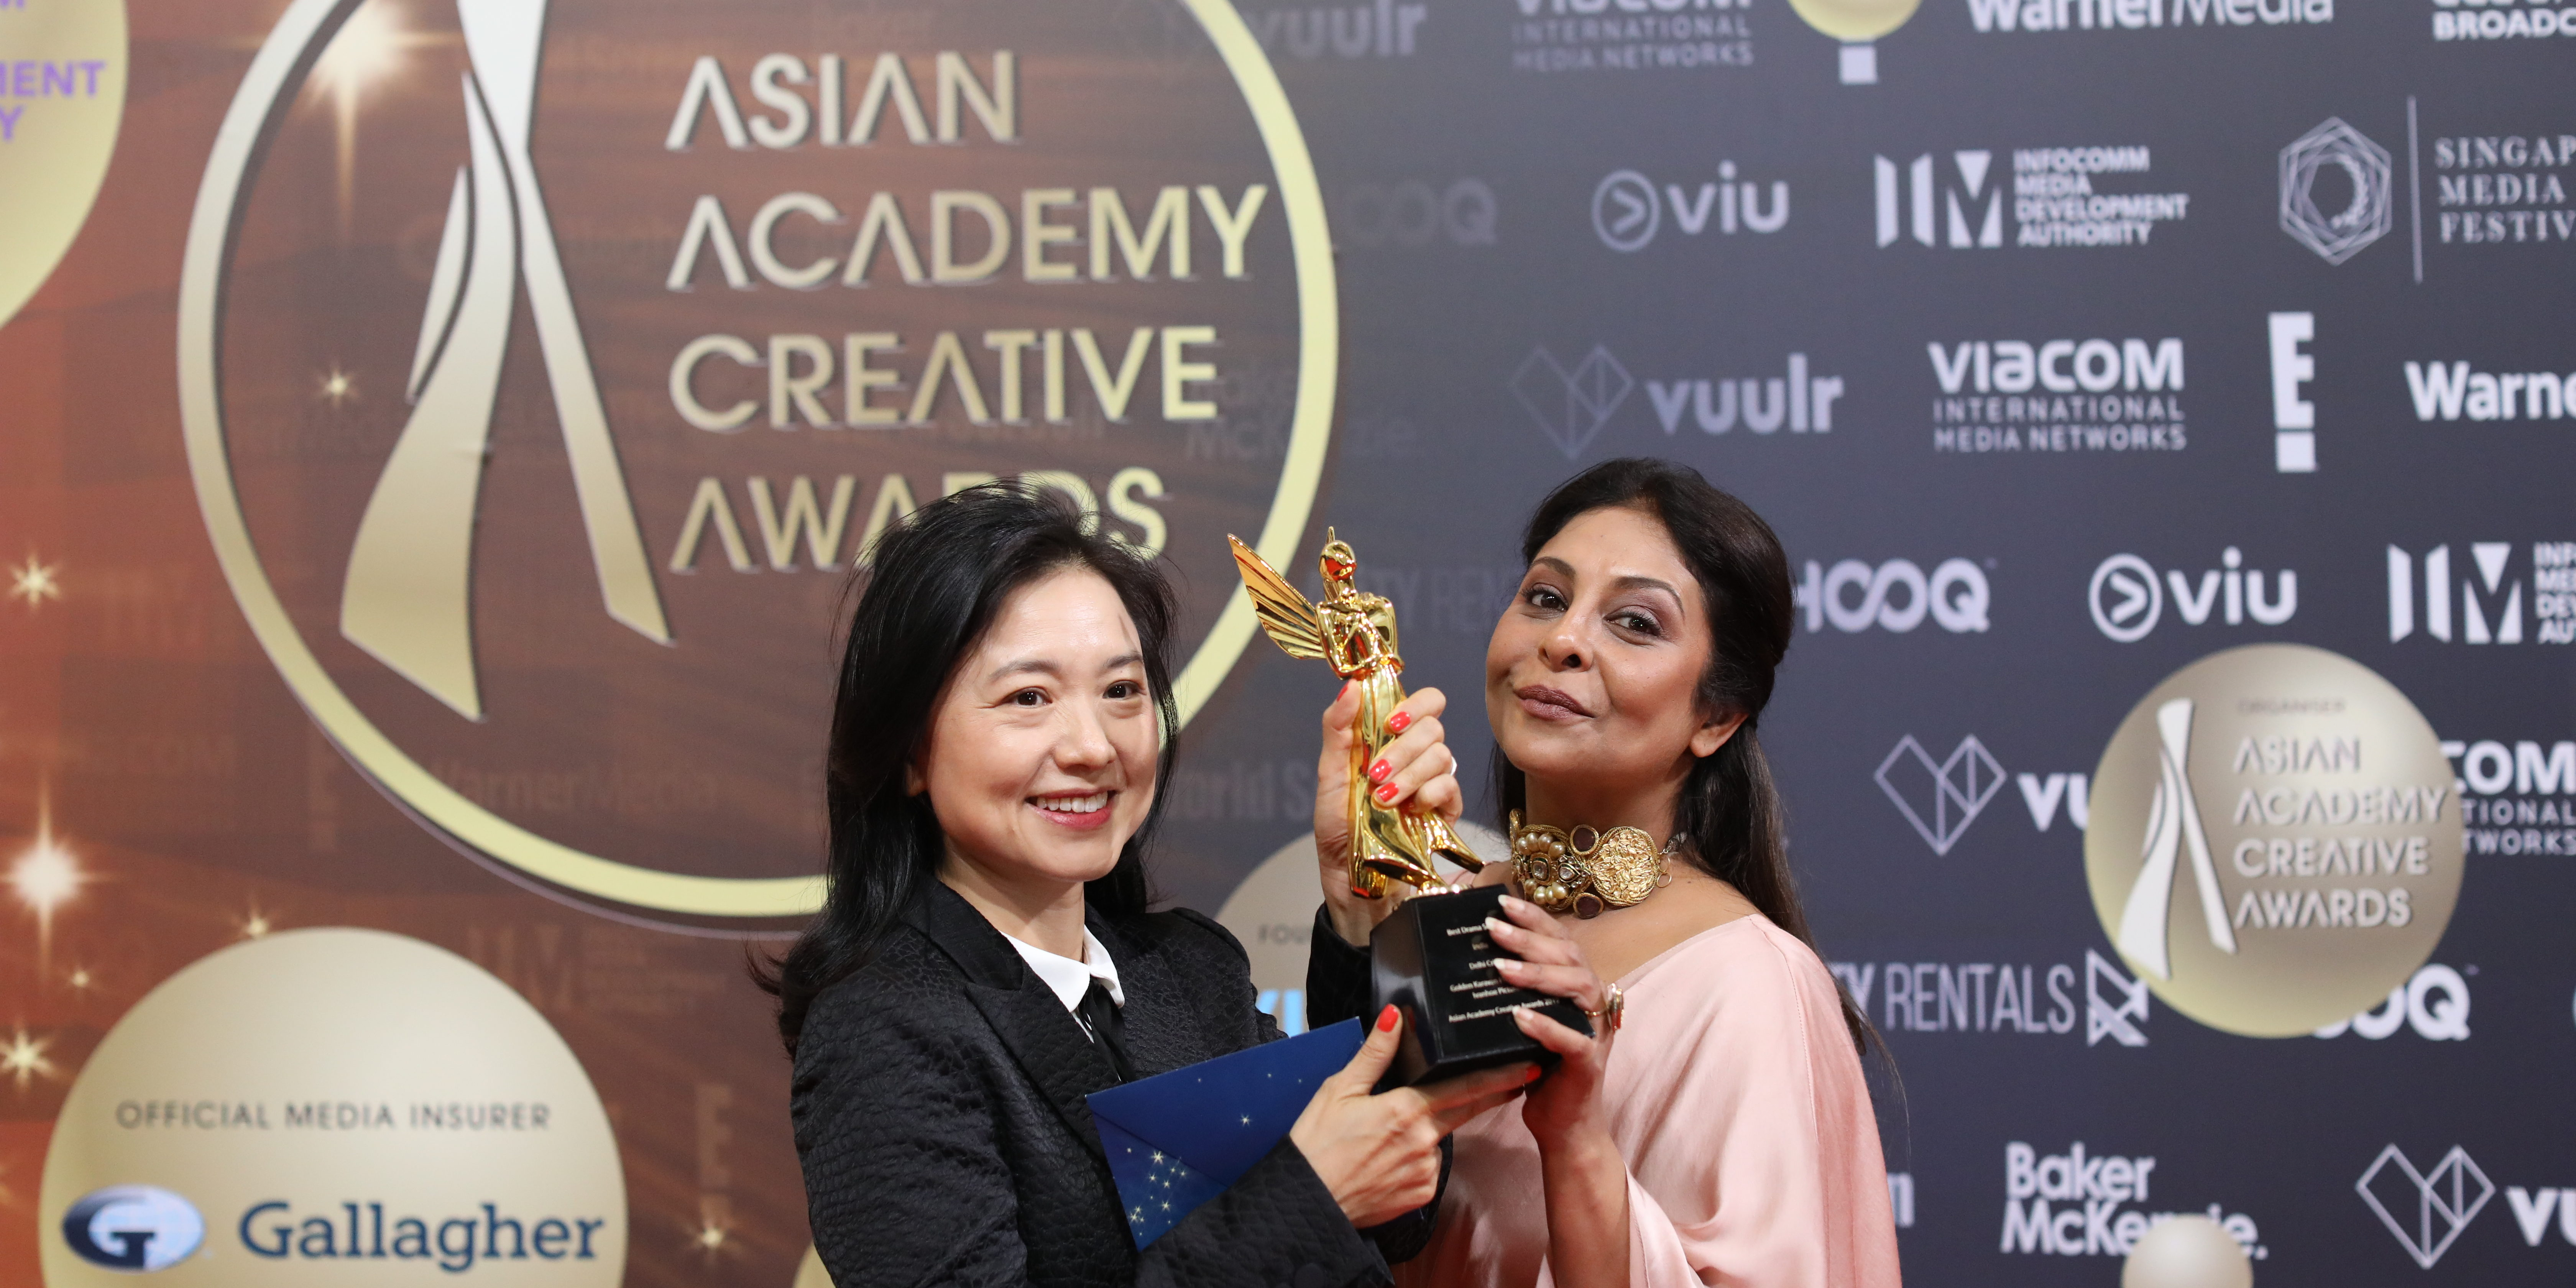 Best Actress In A Leading Role was clinched by Shefali Shah for the Netflix Series 'Delhi Crime' at the Asian Academy Creative Awards 2019 held in Singapore. Photo Courtesy: AAA